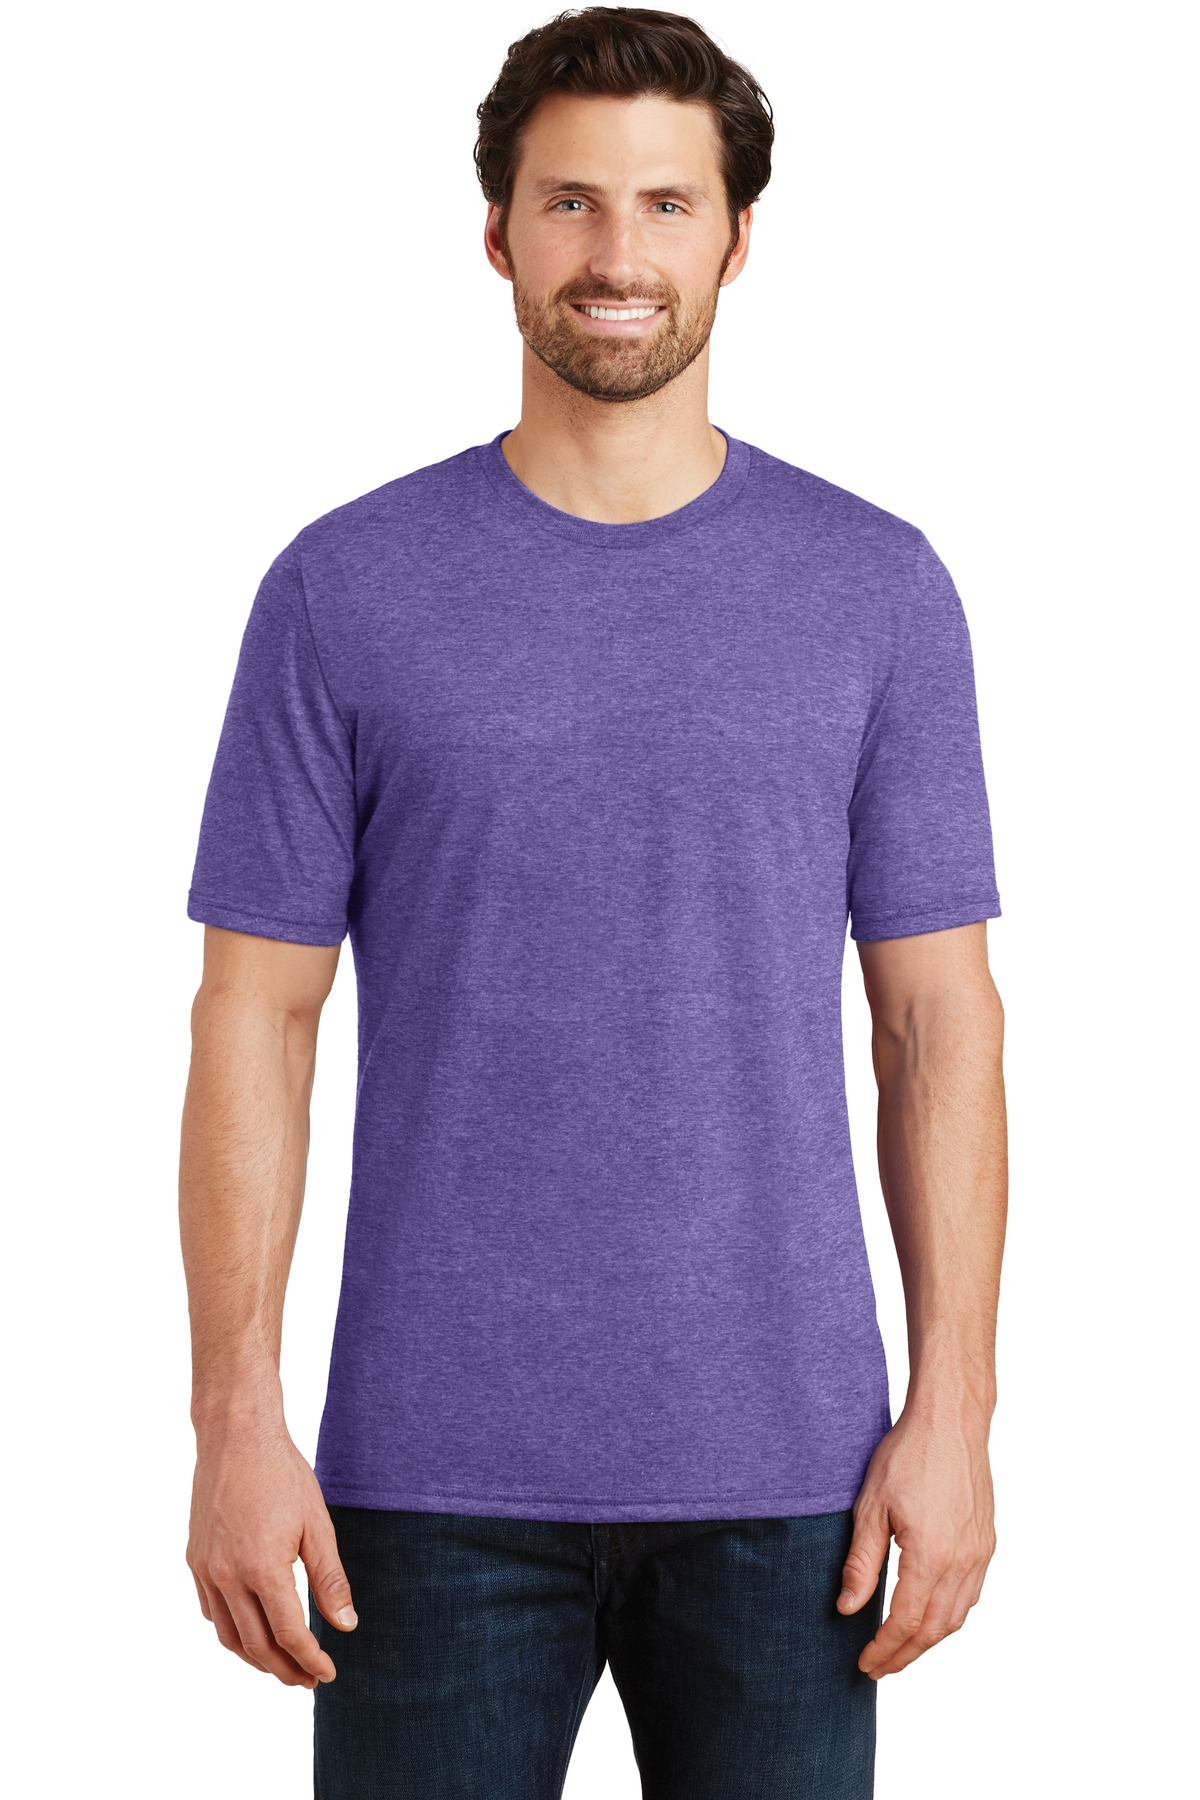 District  ®  Perfect Tri ® Tee. DM130 - Purple Frost